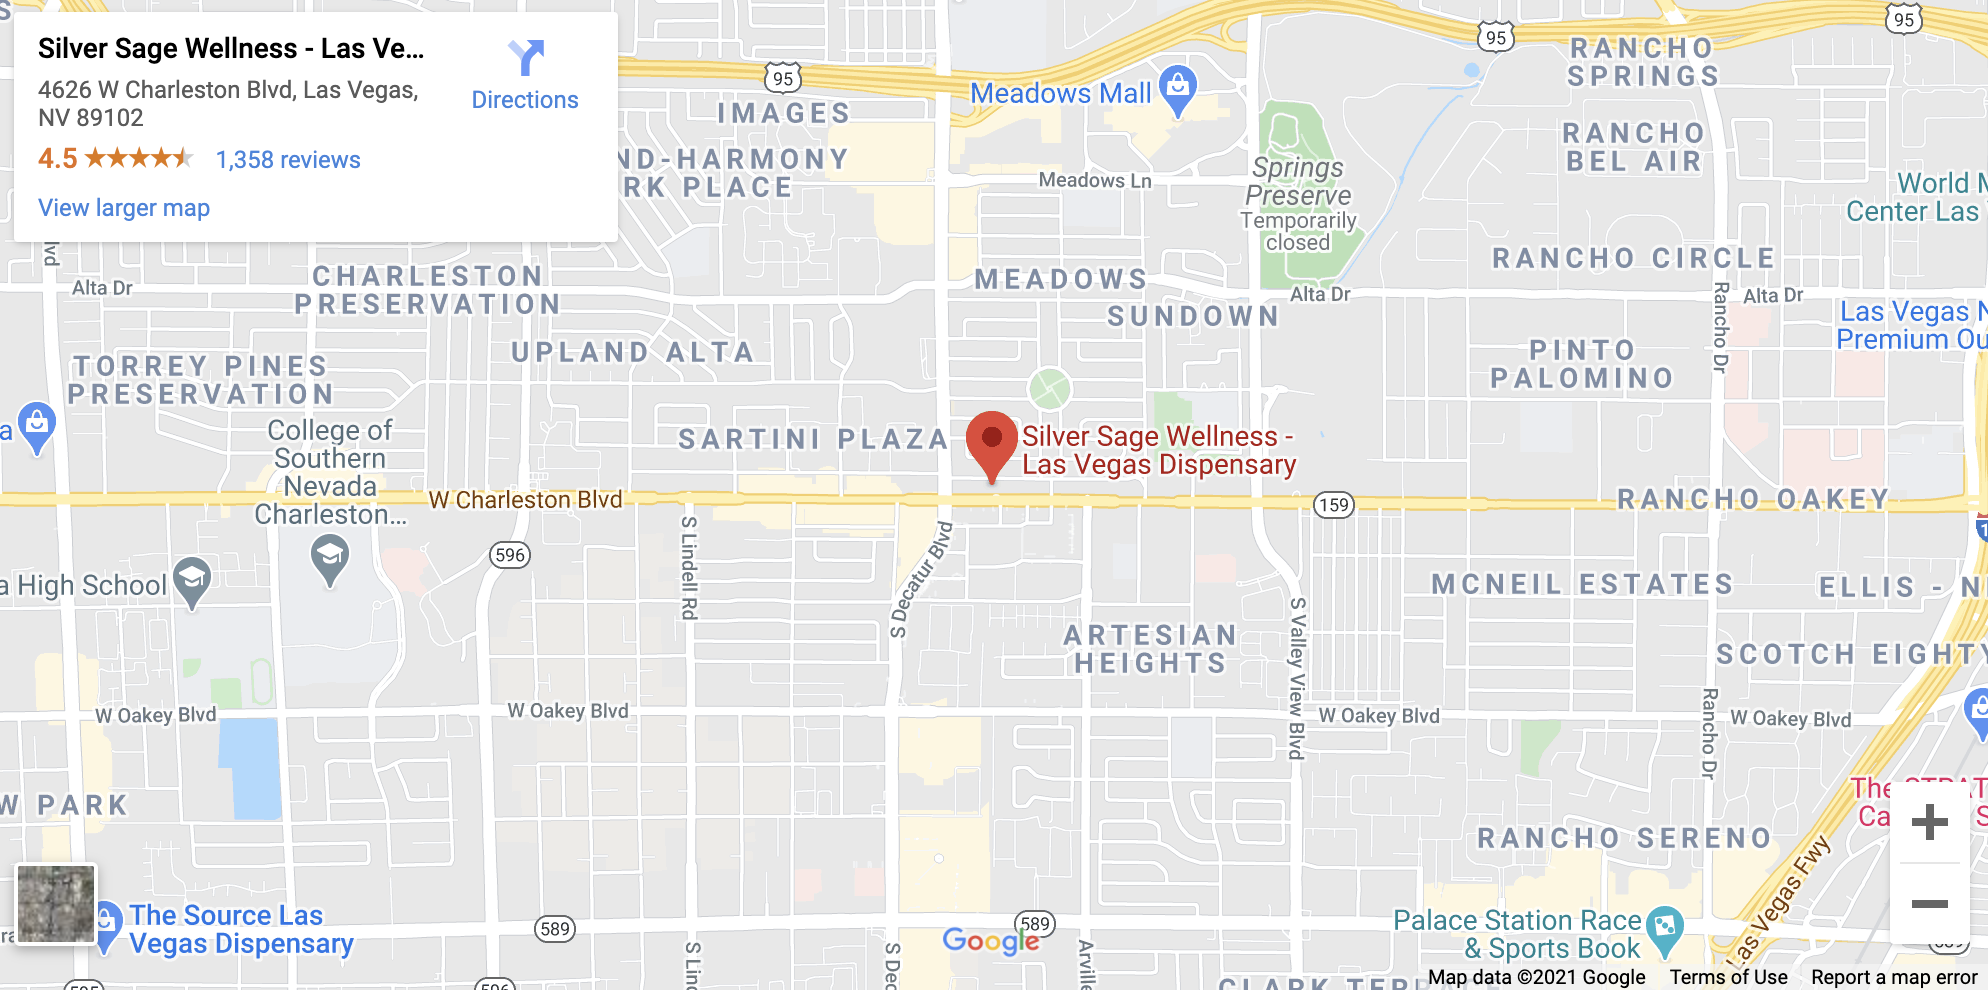 las vegas dispensary on google maps